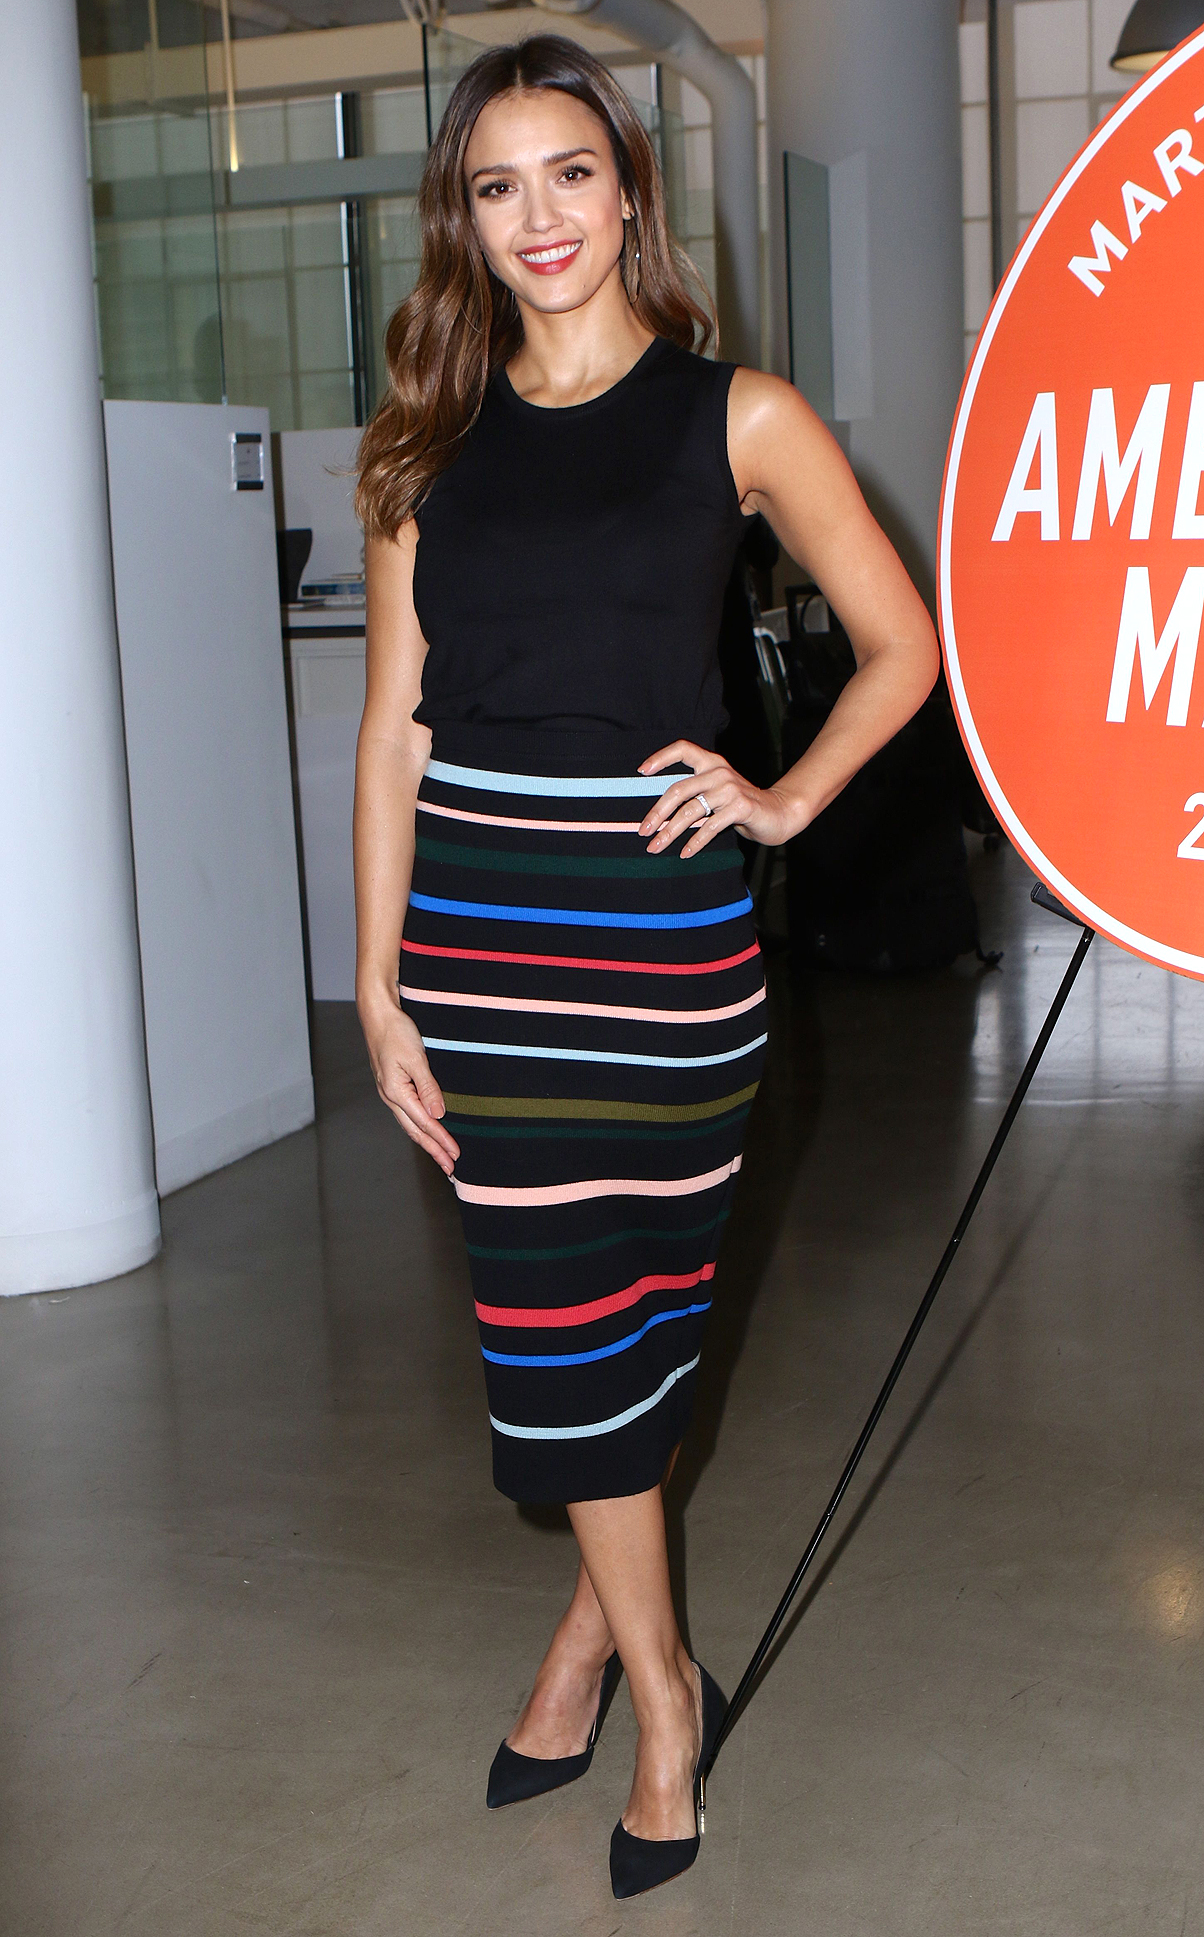 Jessica Alba and Martha Stewart attend the American Made Summit 2016 in NYC